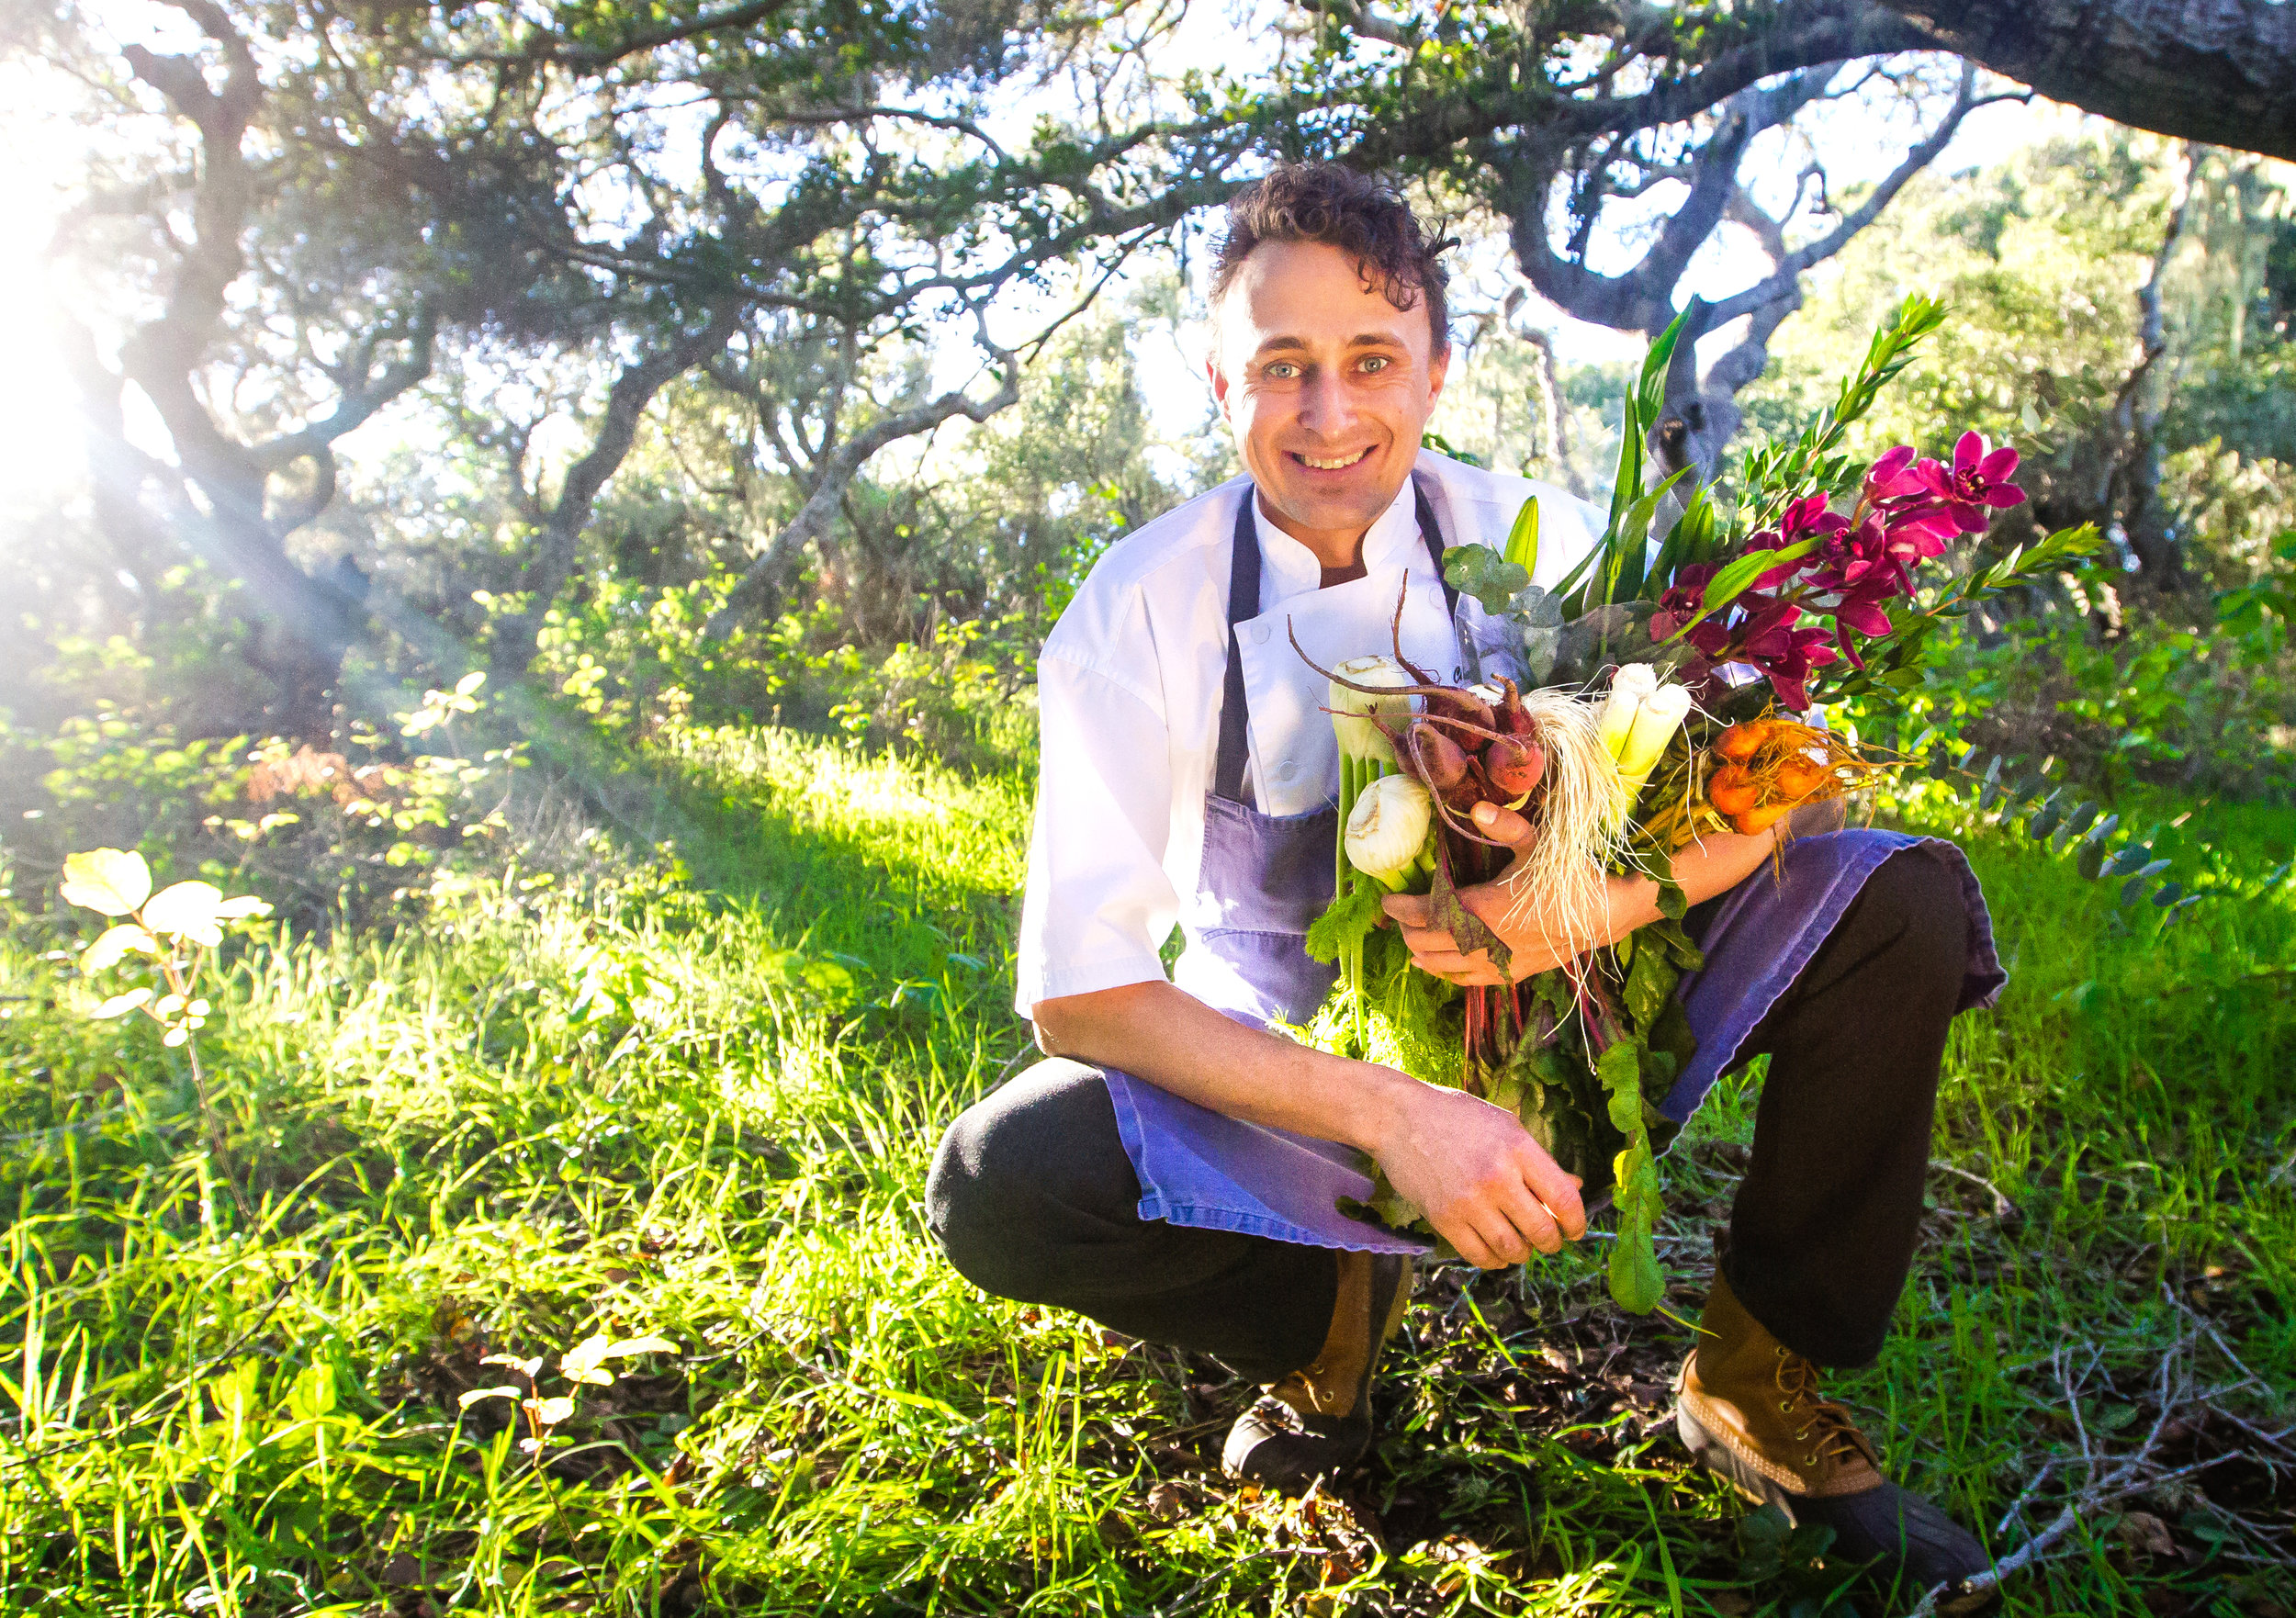 FEED YOUR LOVE    Danior Kitchen owner/chef Spencer Johnston has come a long way since starting out at Paso Robles' Bistro Laurent some 18 years ago. Today, the creative, ultra-seasonal chef crafts incredible menus for some of the region's top winemakers and foodie friends.    PHOTO BY JAYSON MELLOM